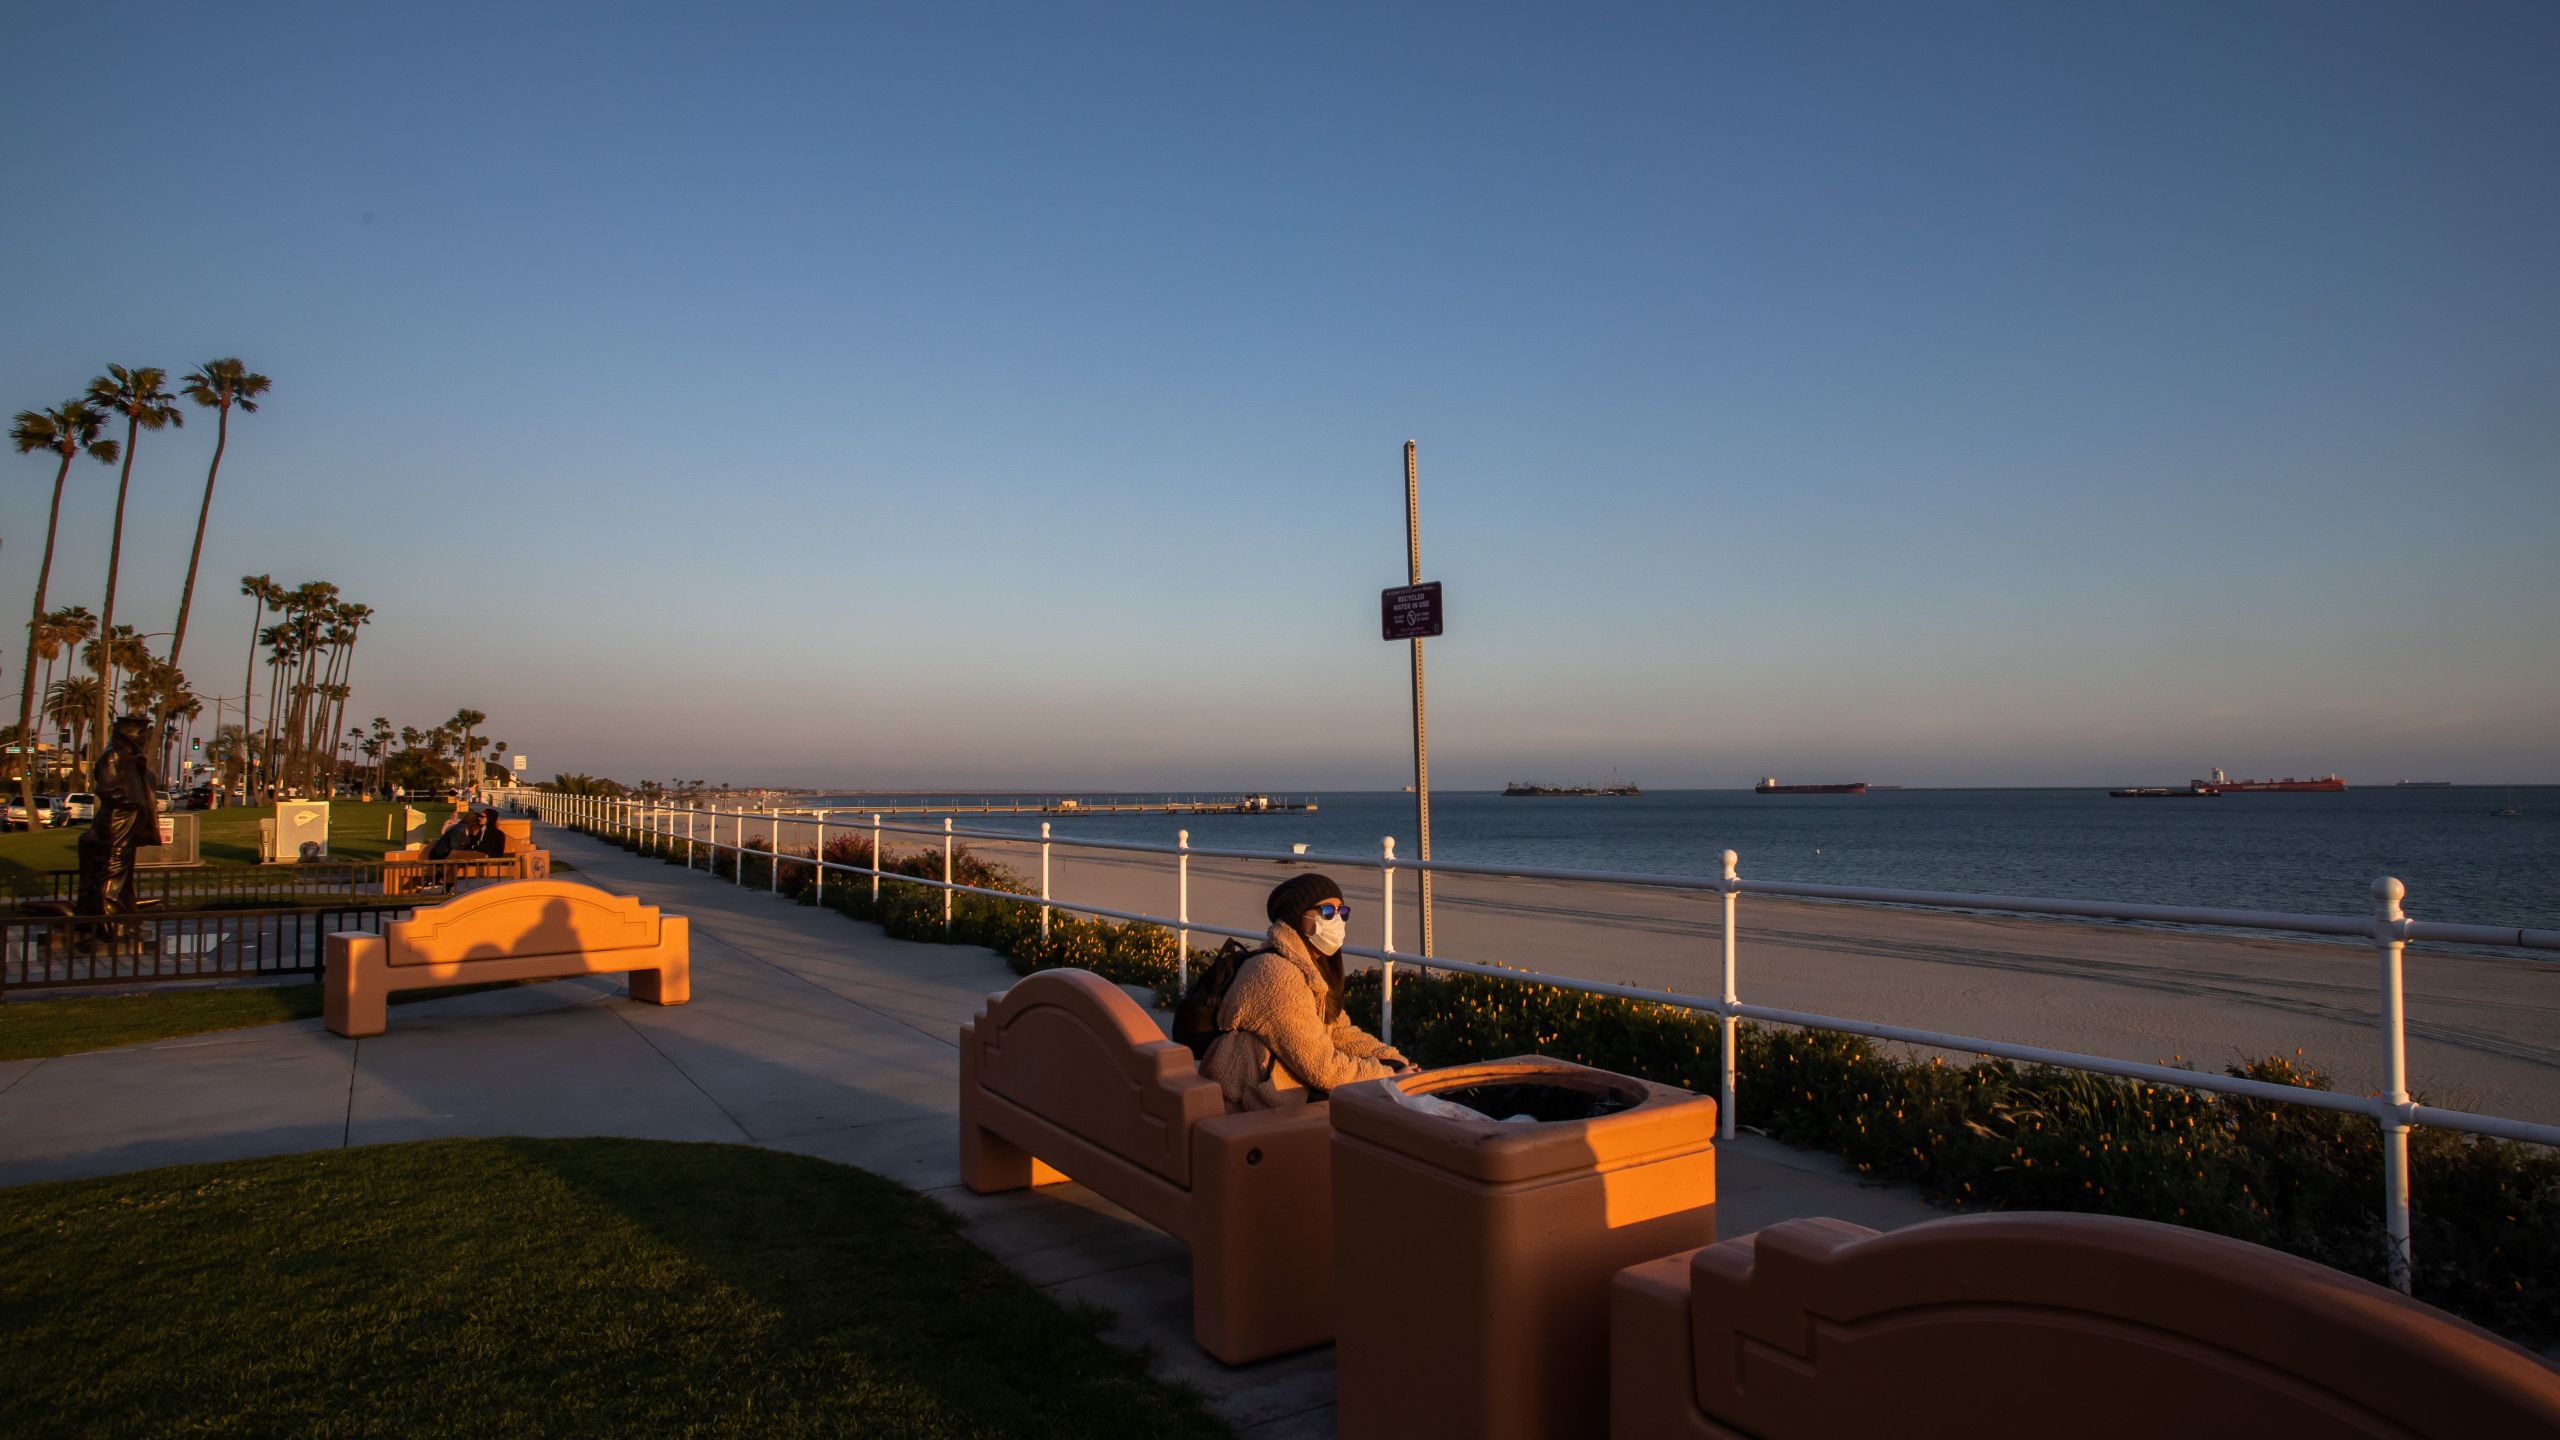 A woman enjoys the sunset while wearing a mask as a preventive measure against the spread of the COVID-19 novel coronavirus in Long Beach, California on March 29, 2020. - President Donald Trump on March 29, 2020, abandoned his timetable for life returning to normal in the United States, extending emergency coronavirus restrictions for another month, while Spain suffered its deadliest day. (Apu Gomes/AFP via Getty Images)